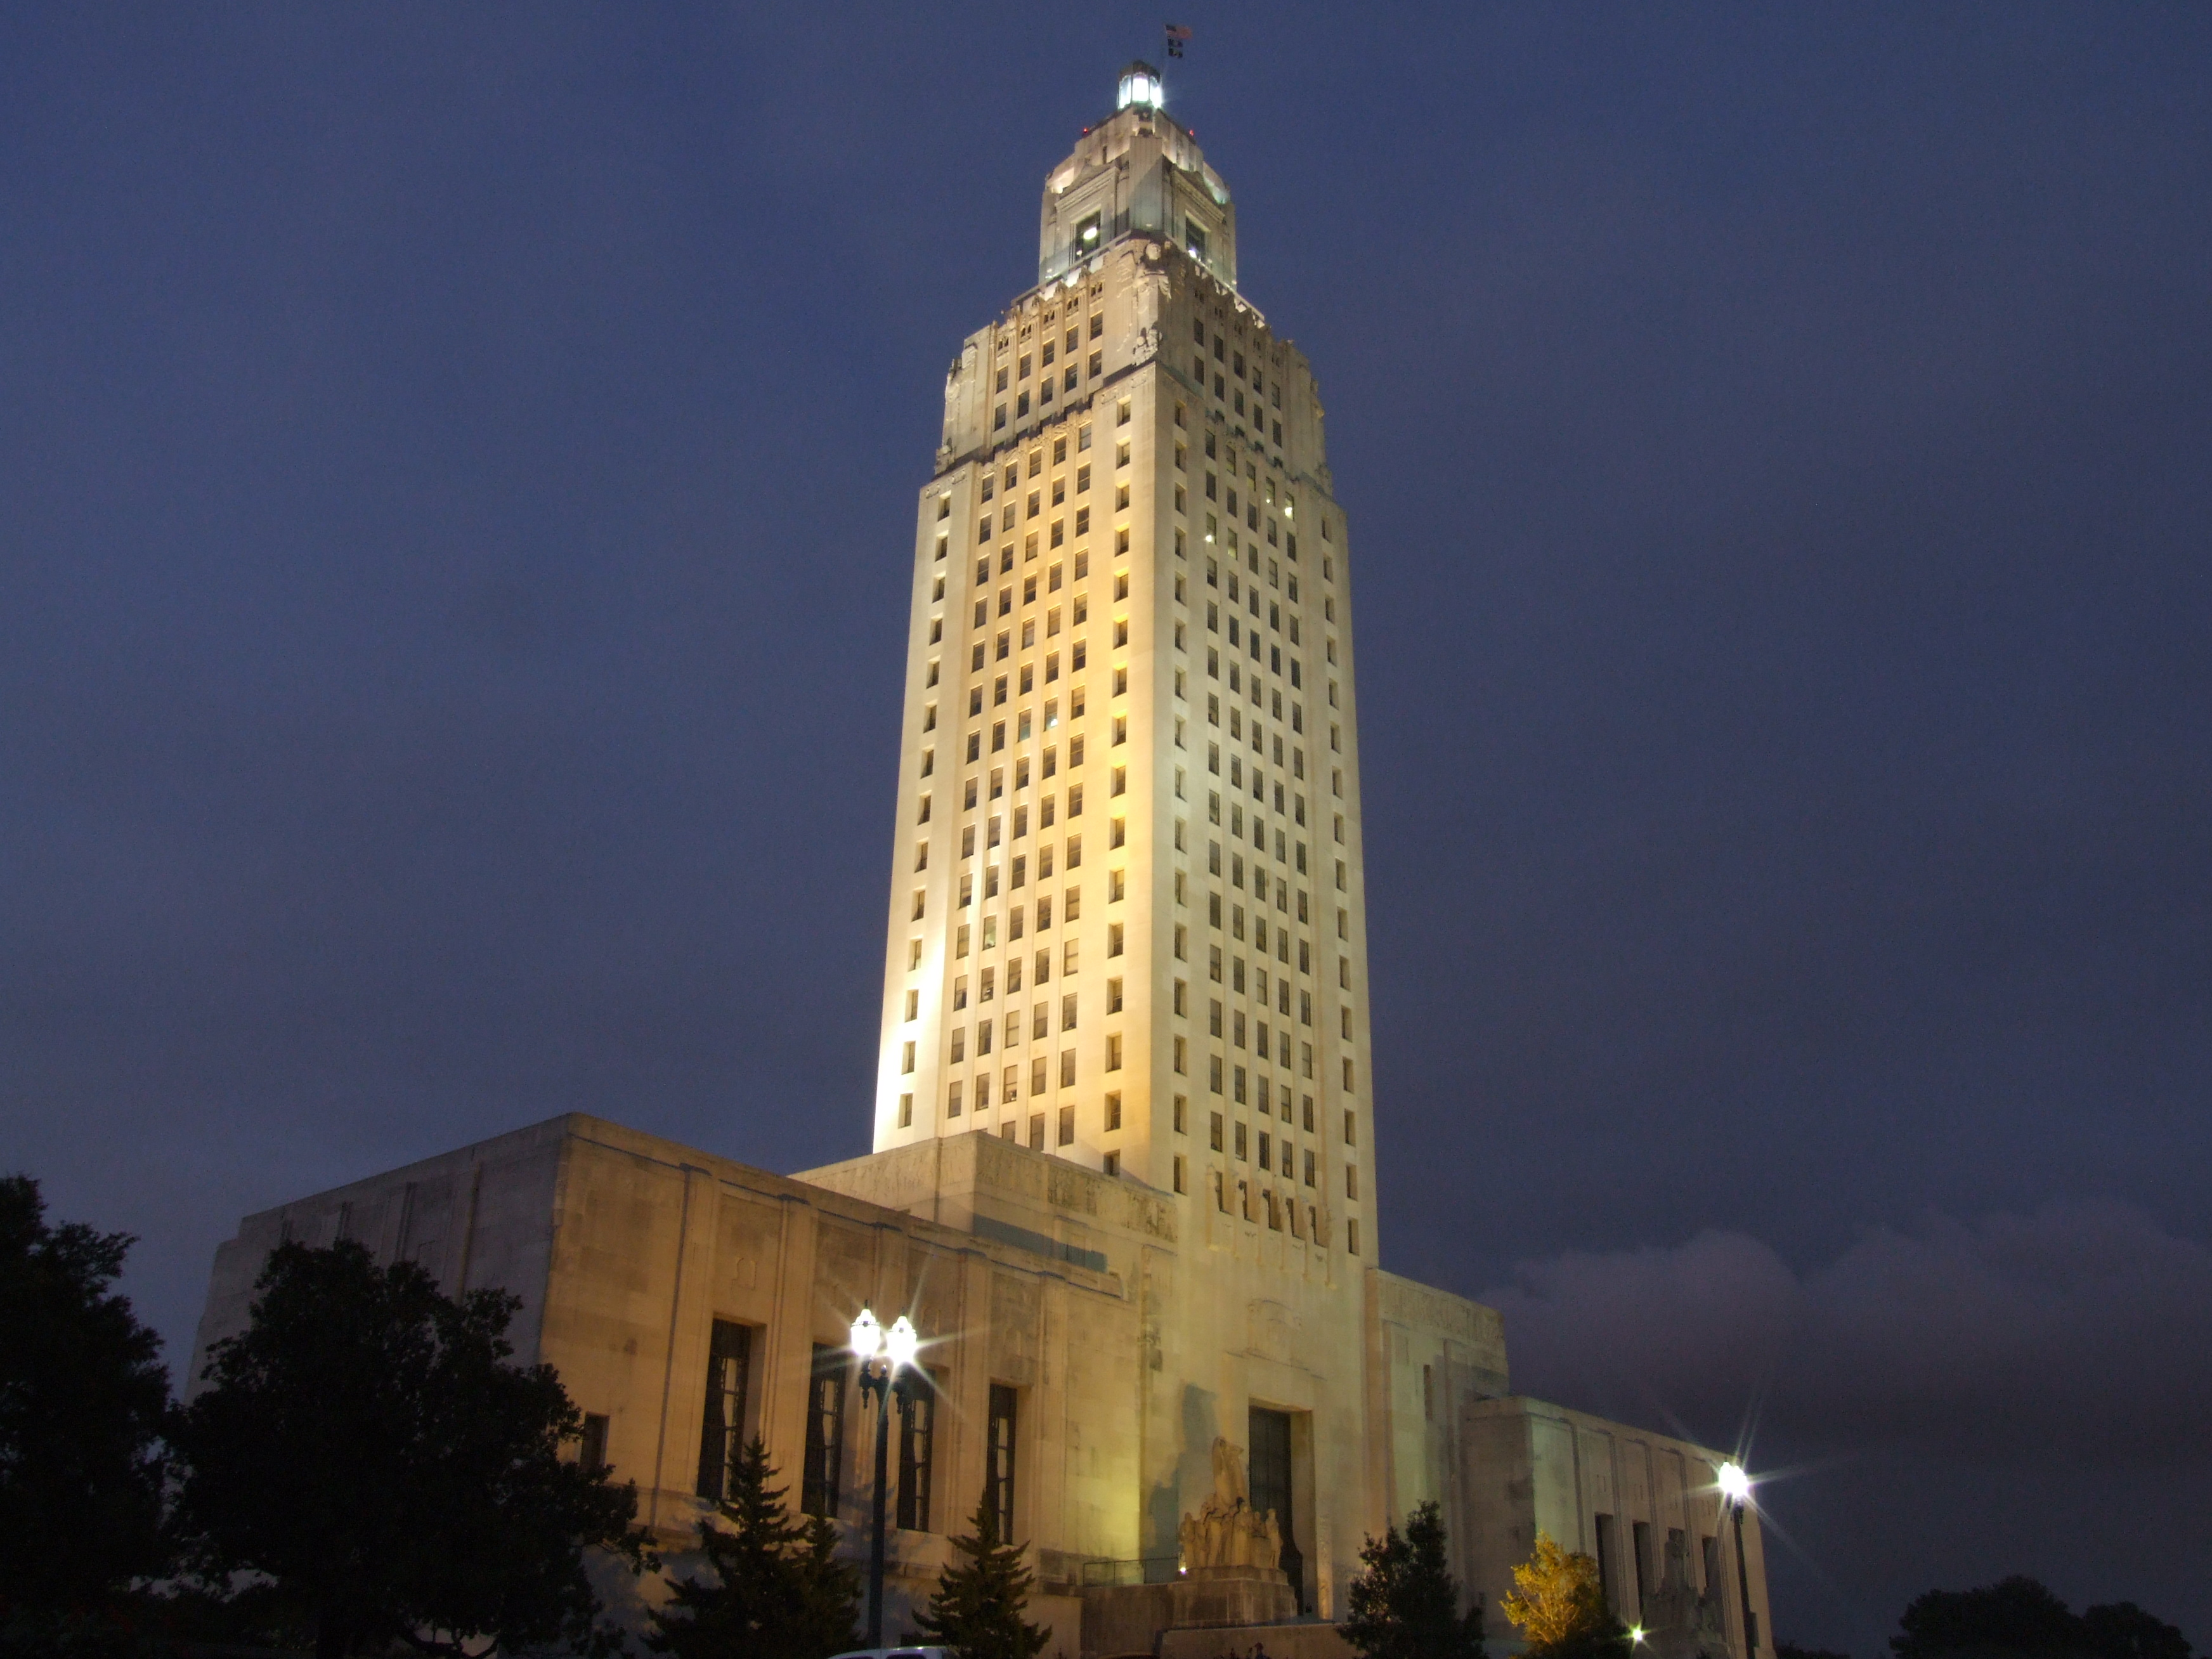 Lousiana Newest State to Pursue Christmas Bill